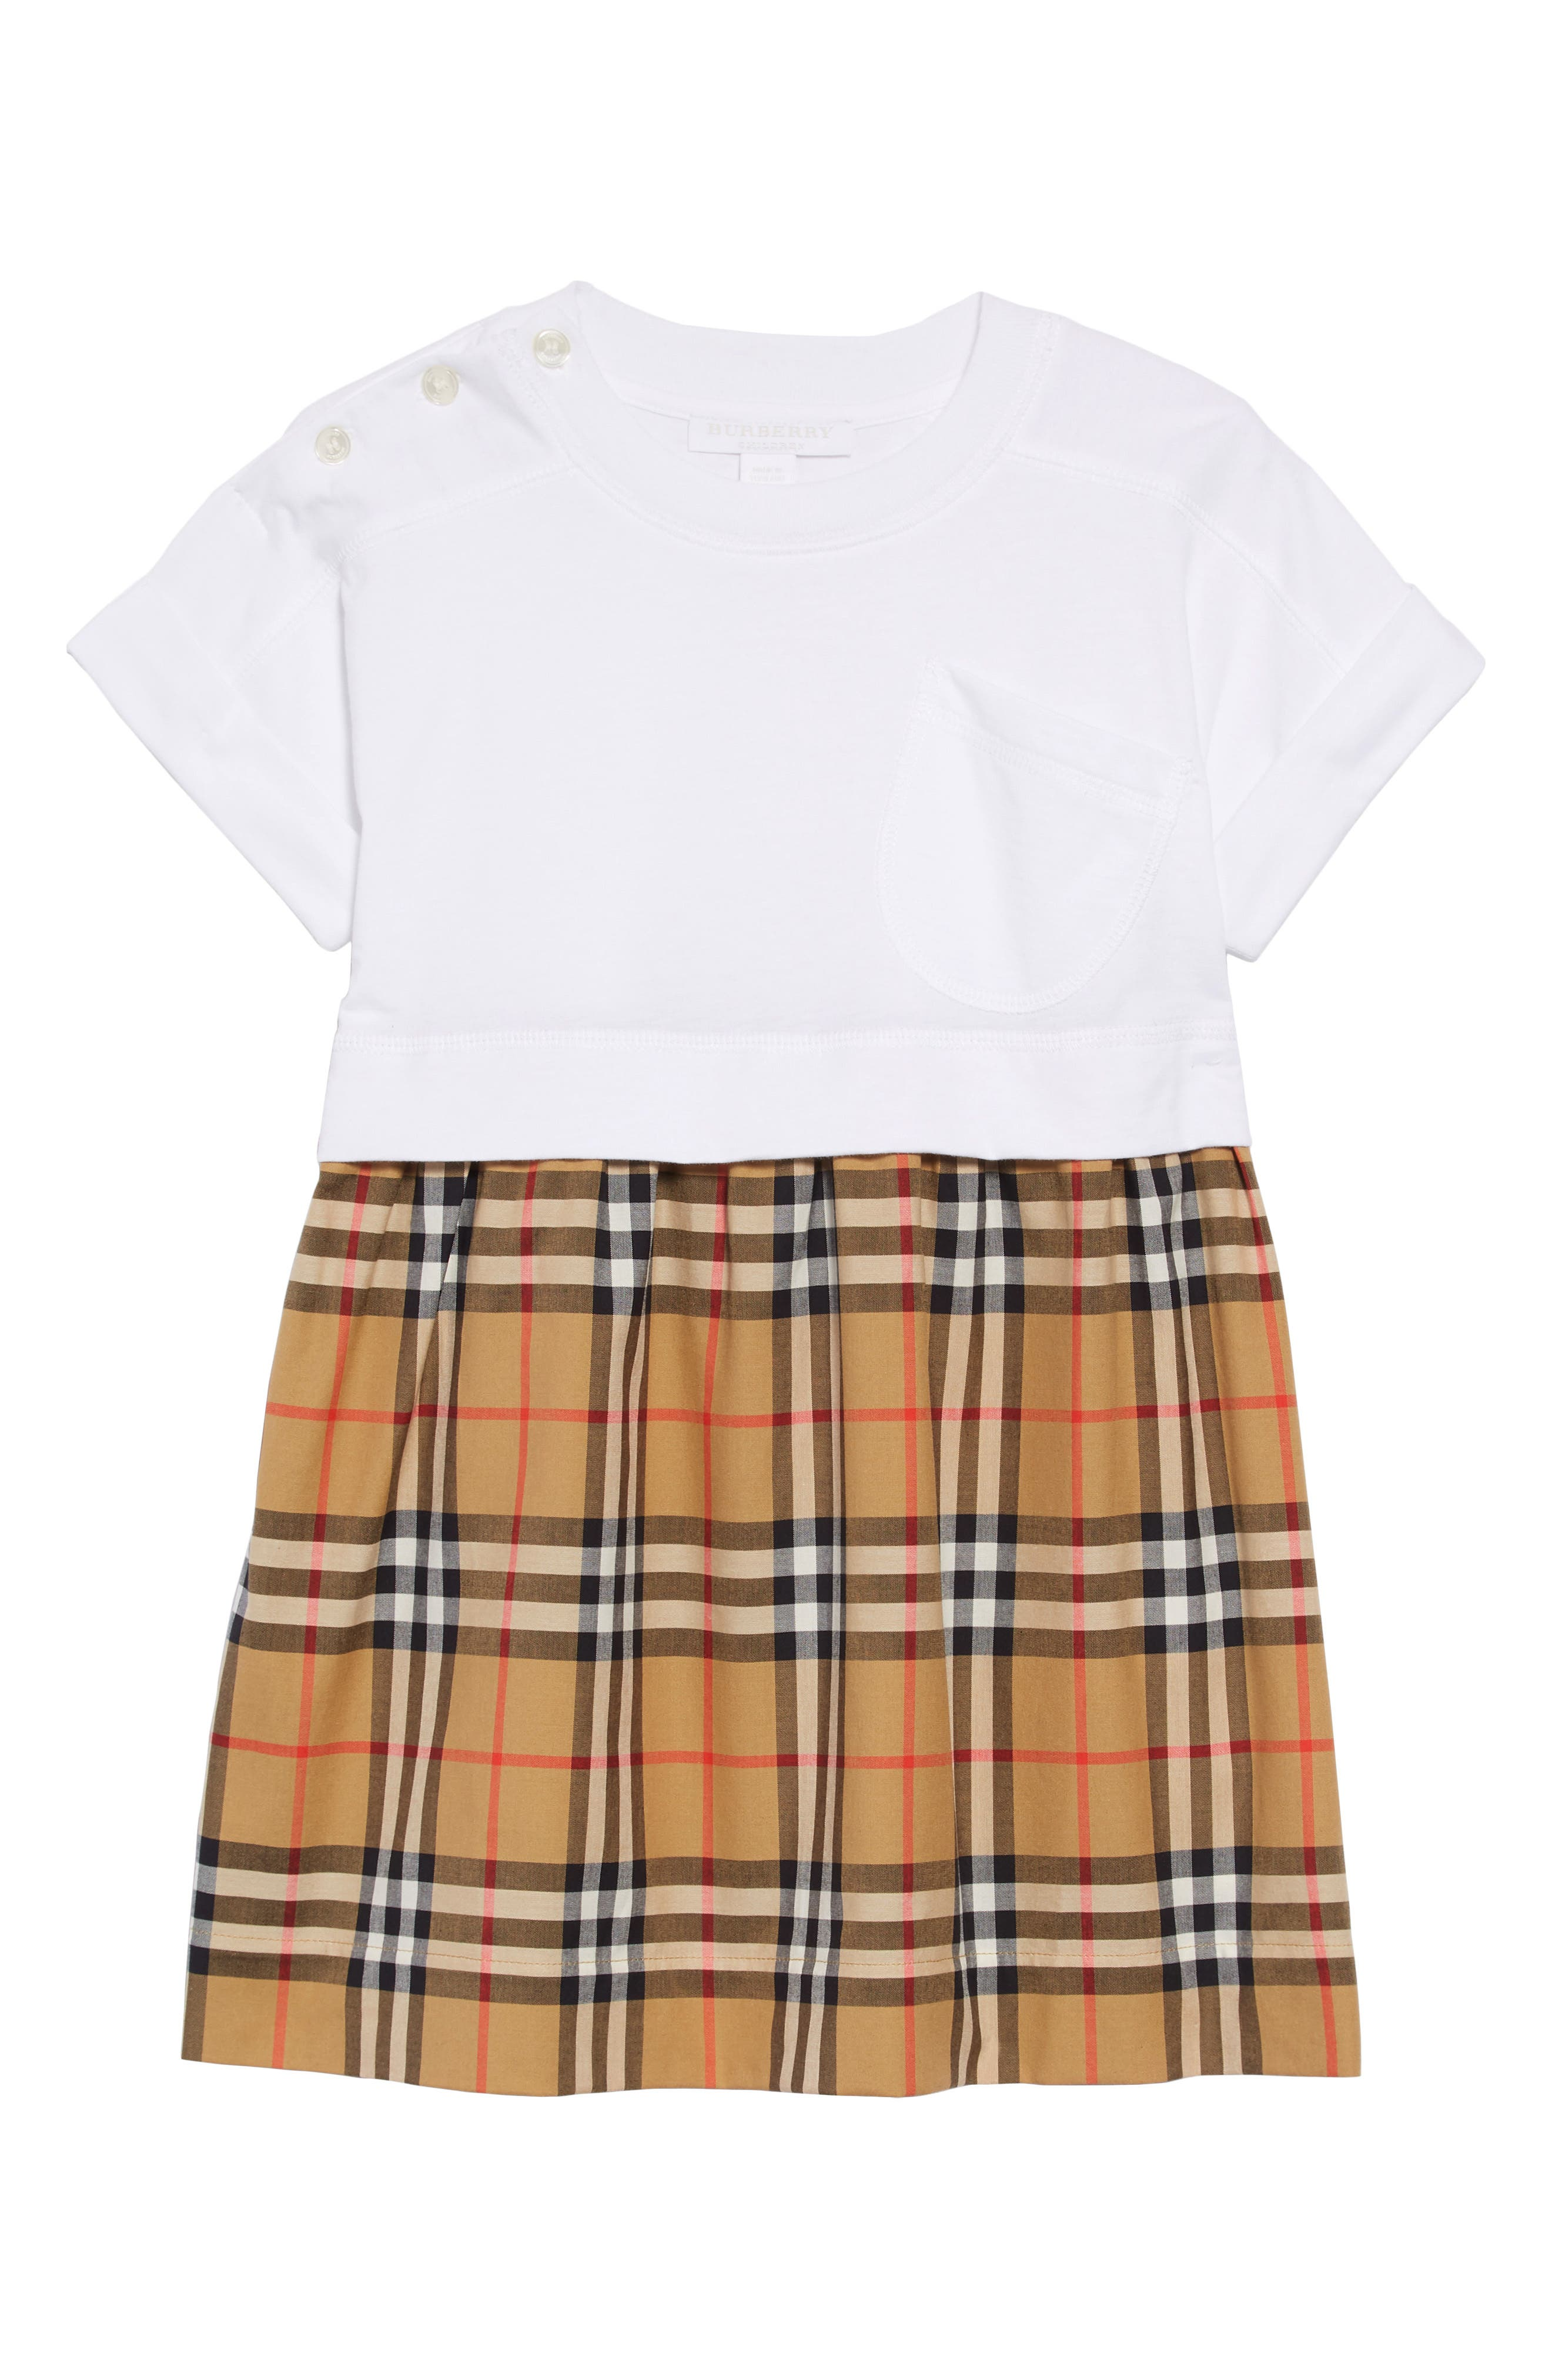 BURBERRY Vintage Check Popover Dress, Main, color, WHITE